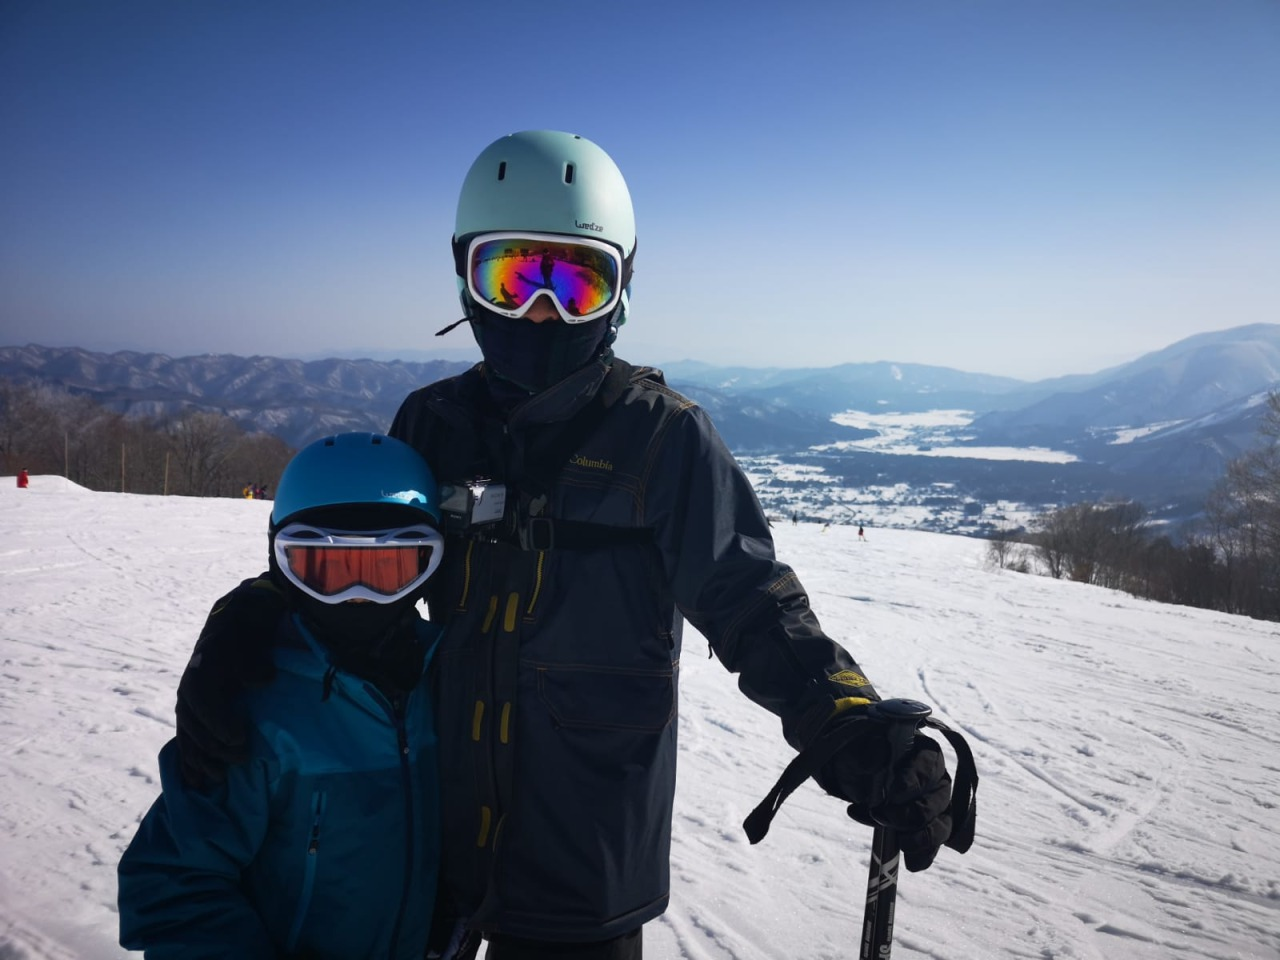 Iwatake Mountain Resort